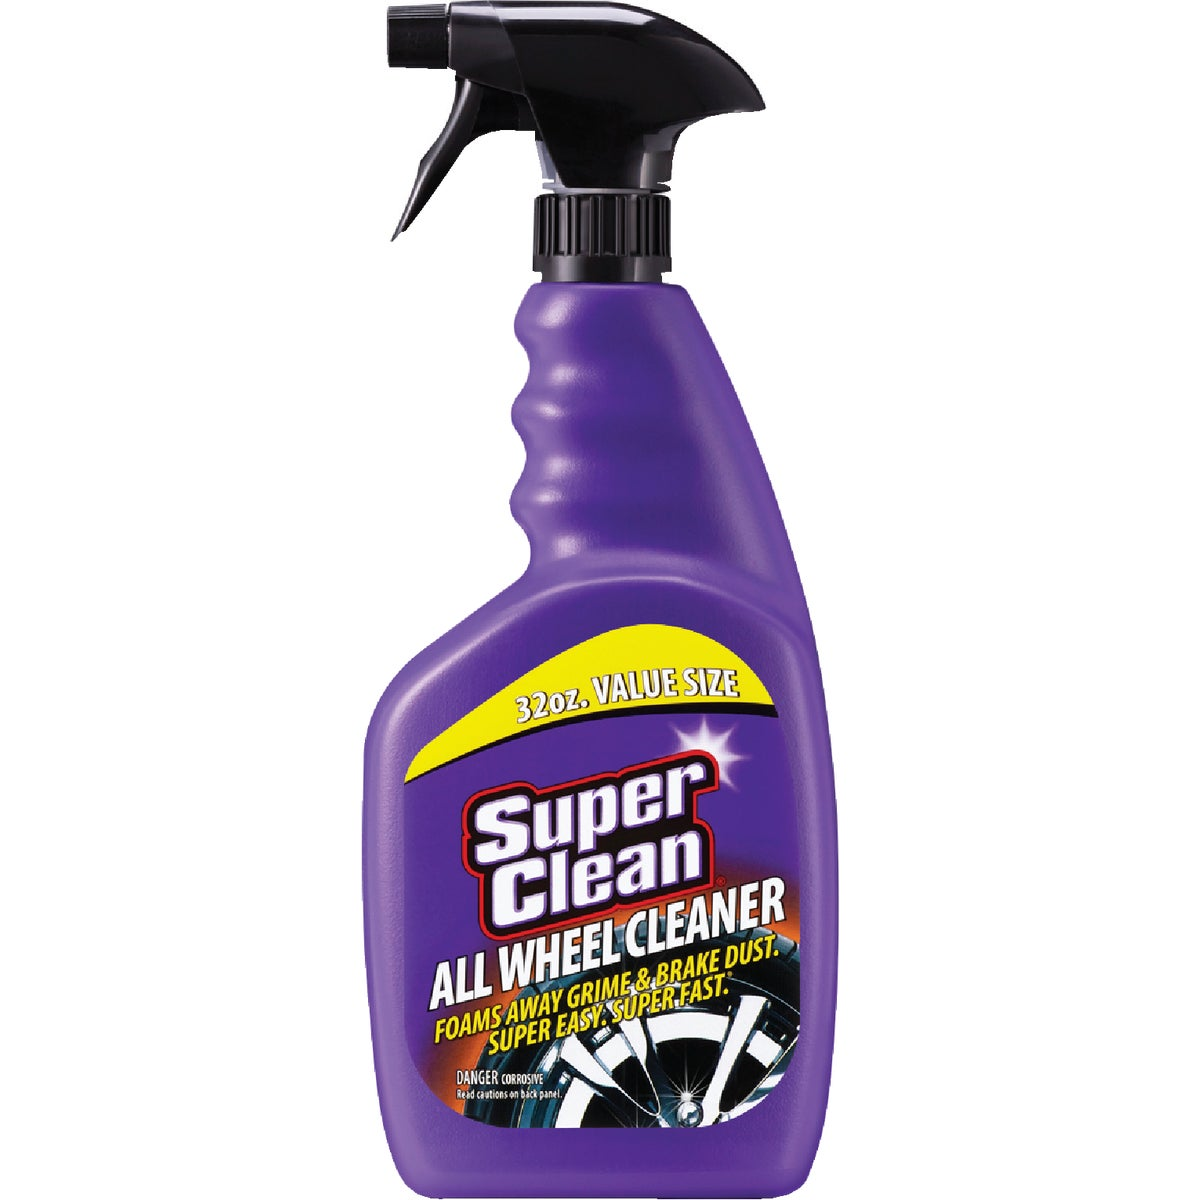 32 OZ WHEEL CLEANER - 100796 by Superclean